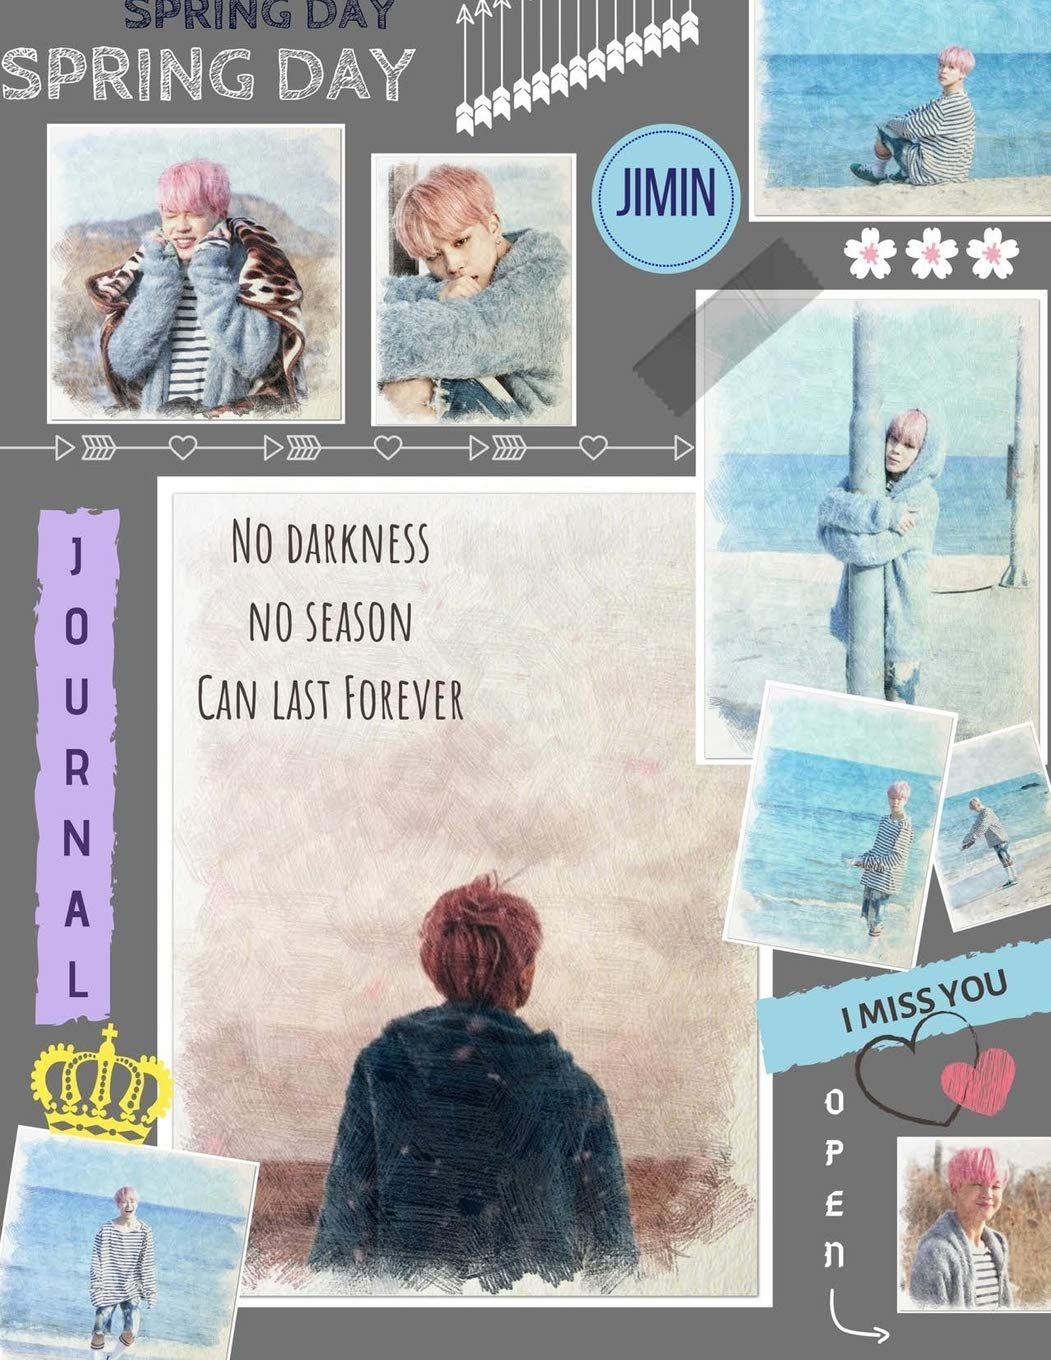 Awesome Bts Journal wallpapers to download for free greenvirals